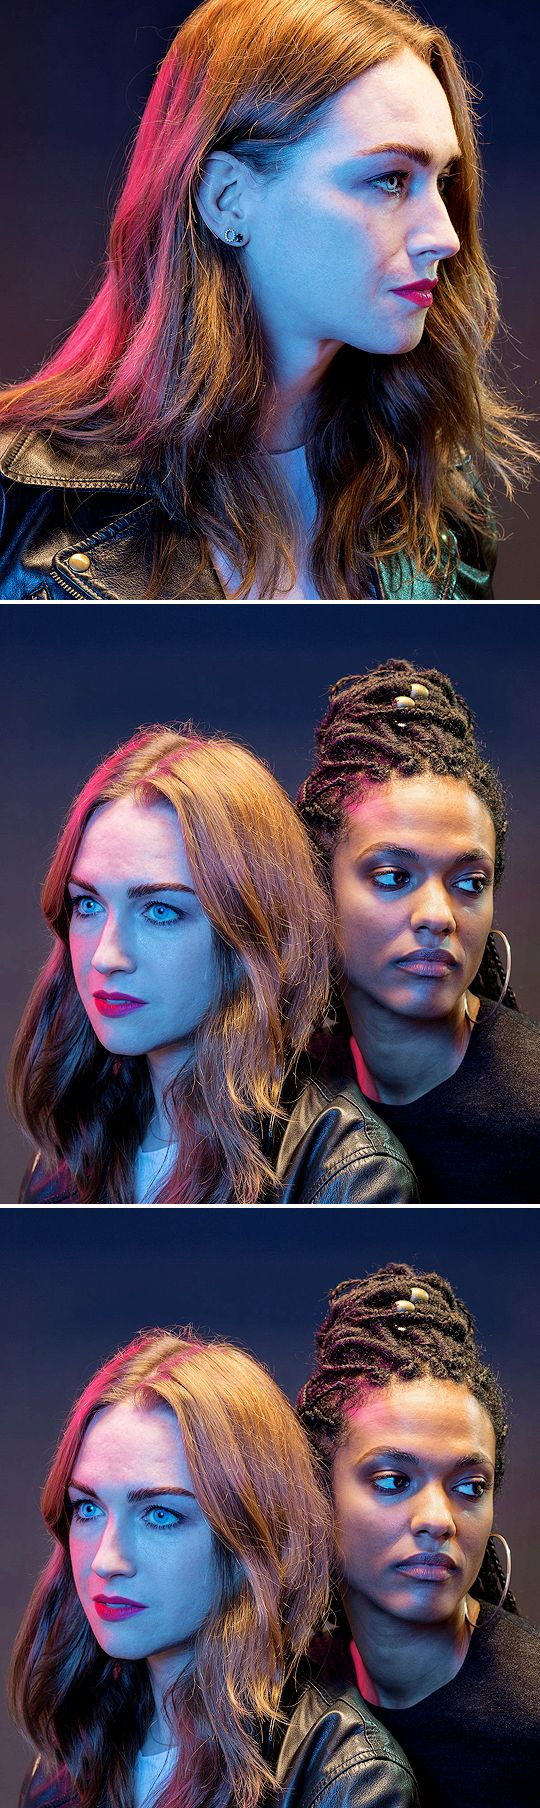 Jamie Clayton and Freema Agyeman photography by James Bareham (2017)